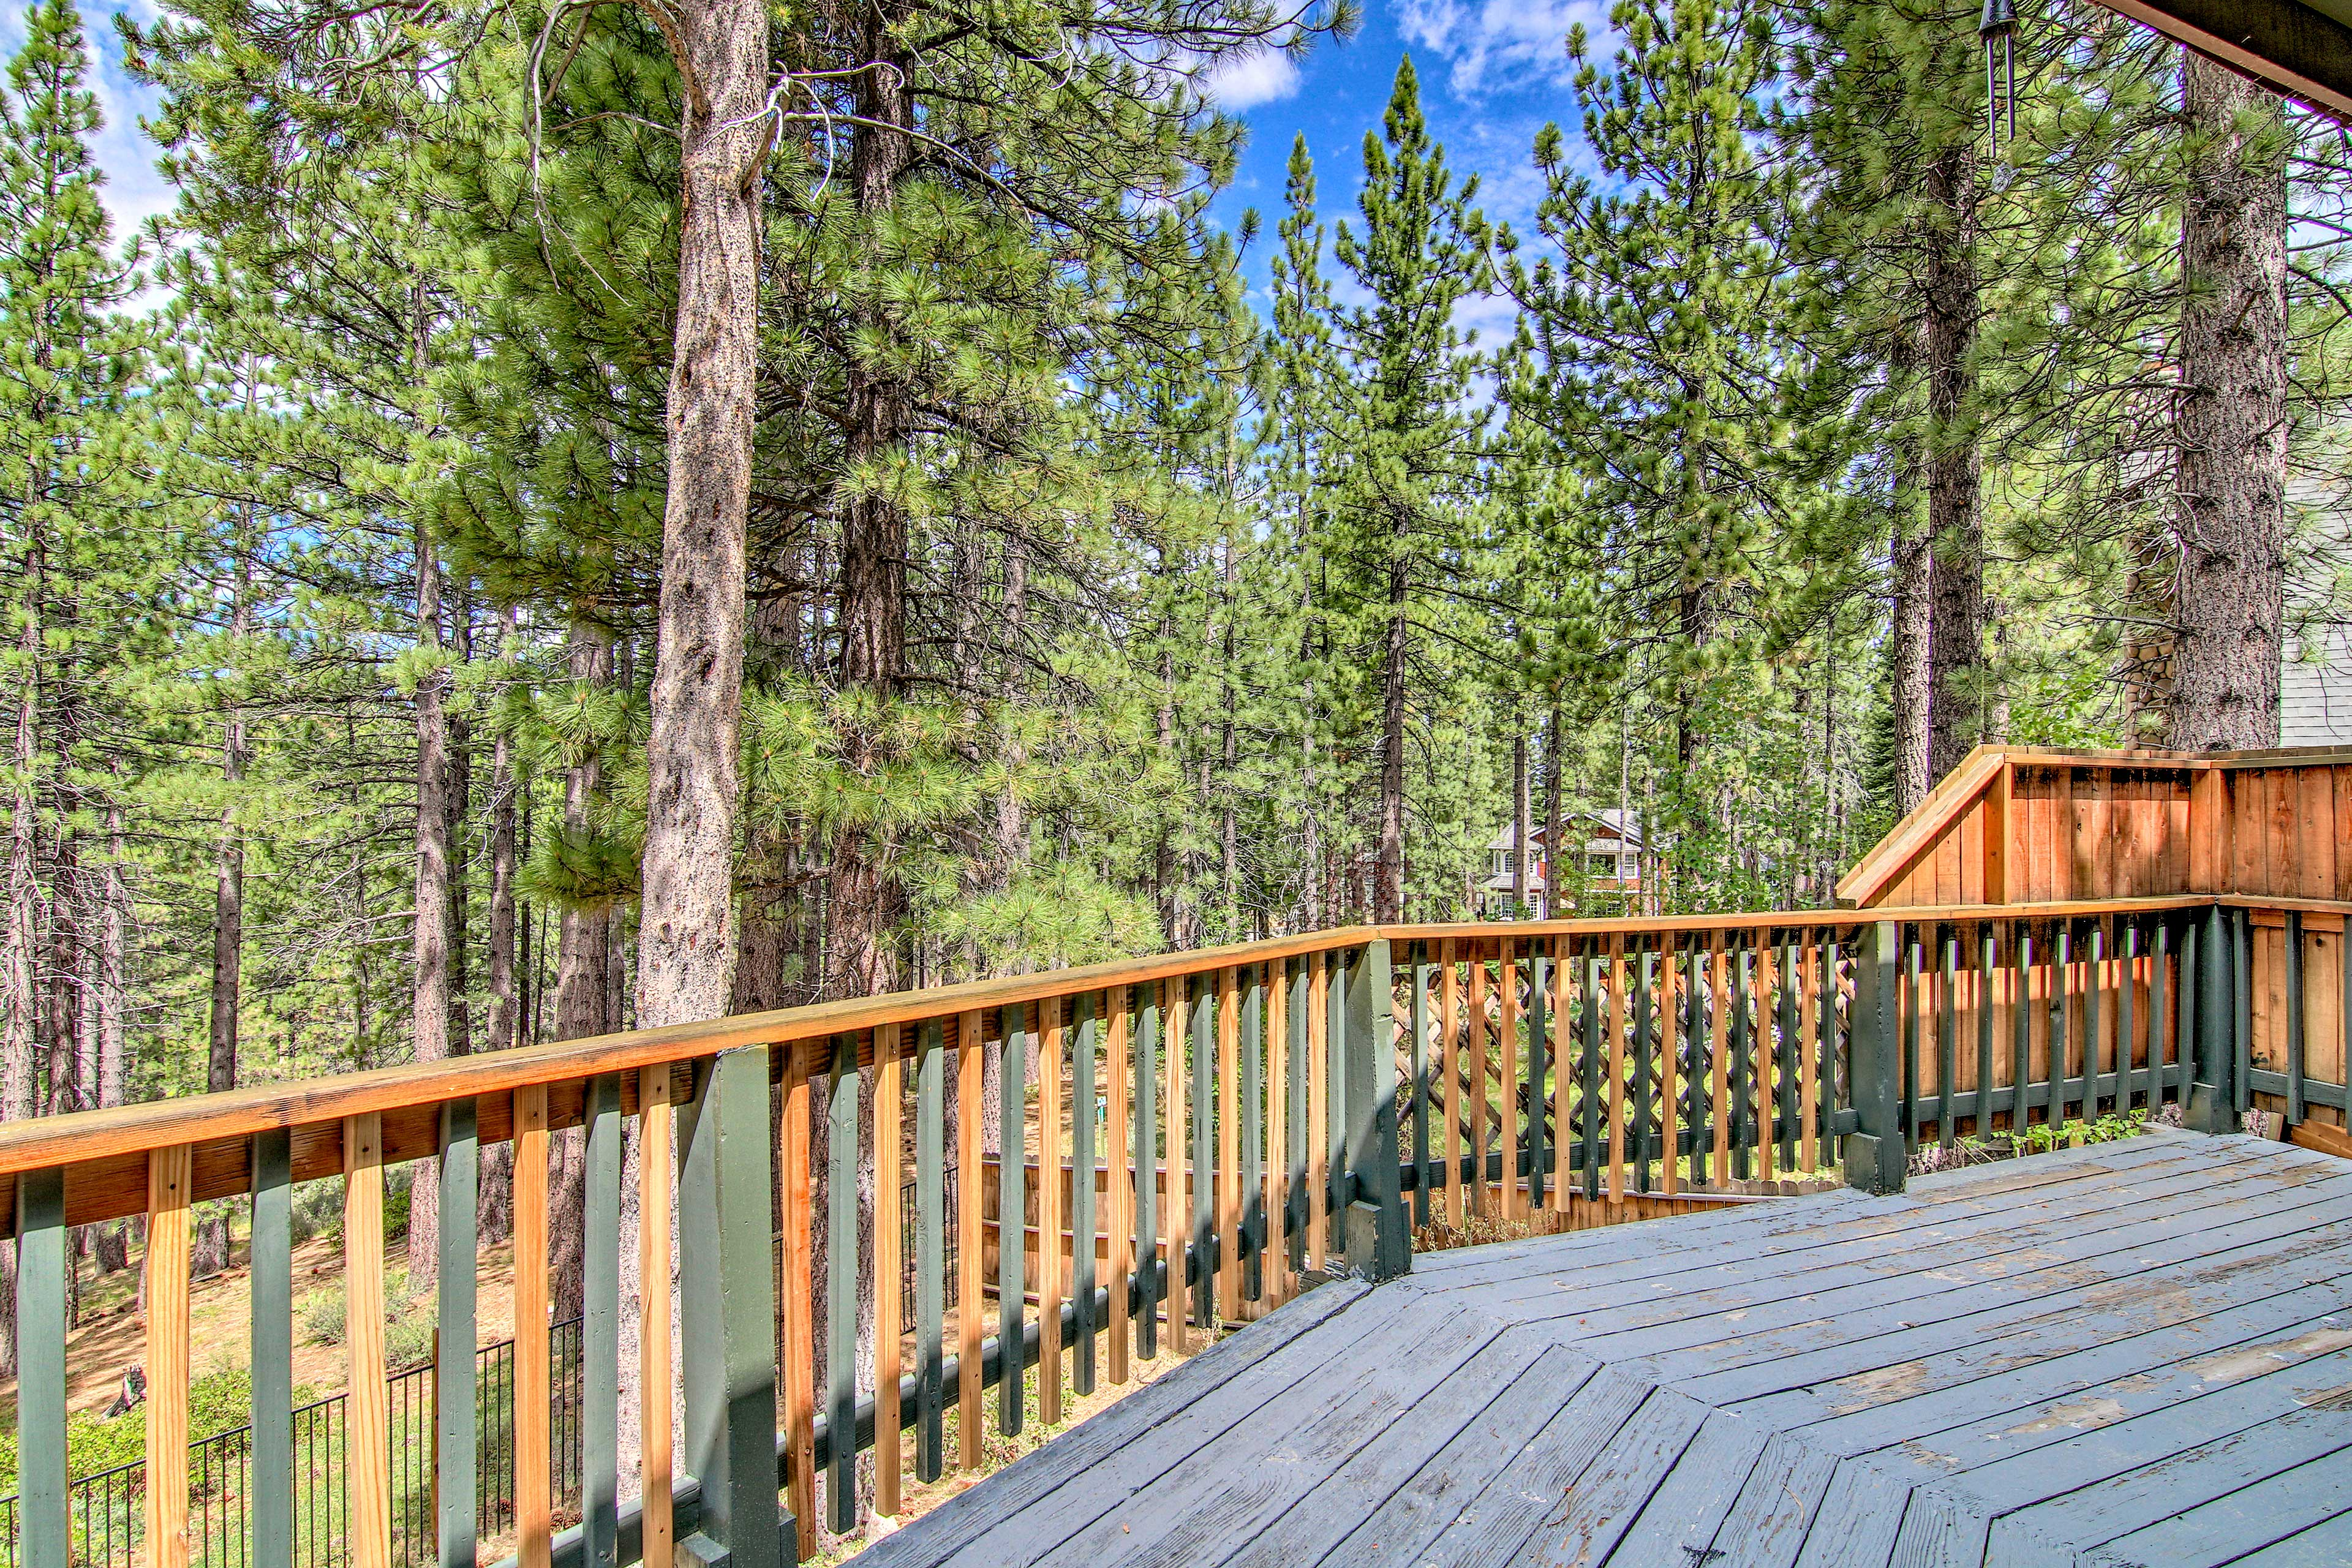 Take in the mountain air from the deck.